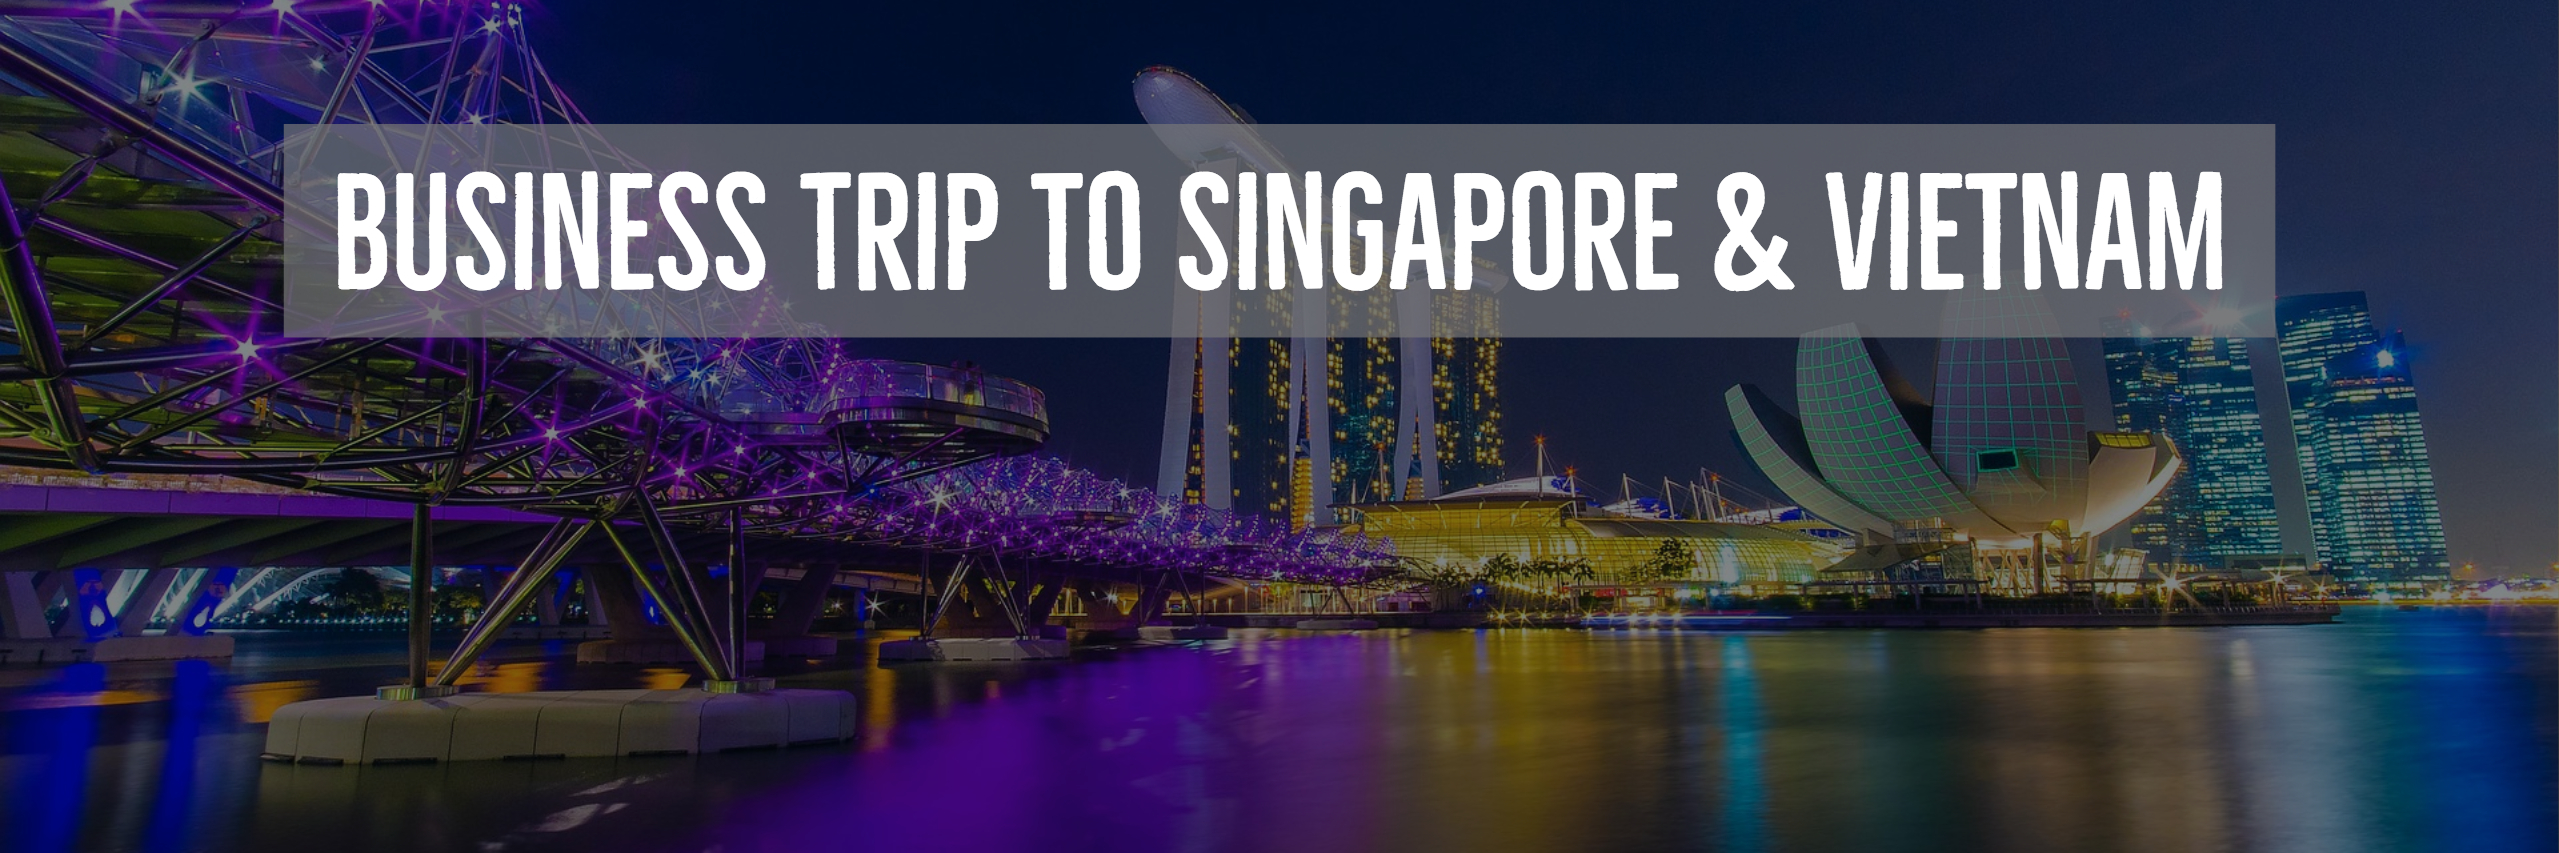 Business Trip to Singapore and Vietnam, Fall 2018